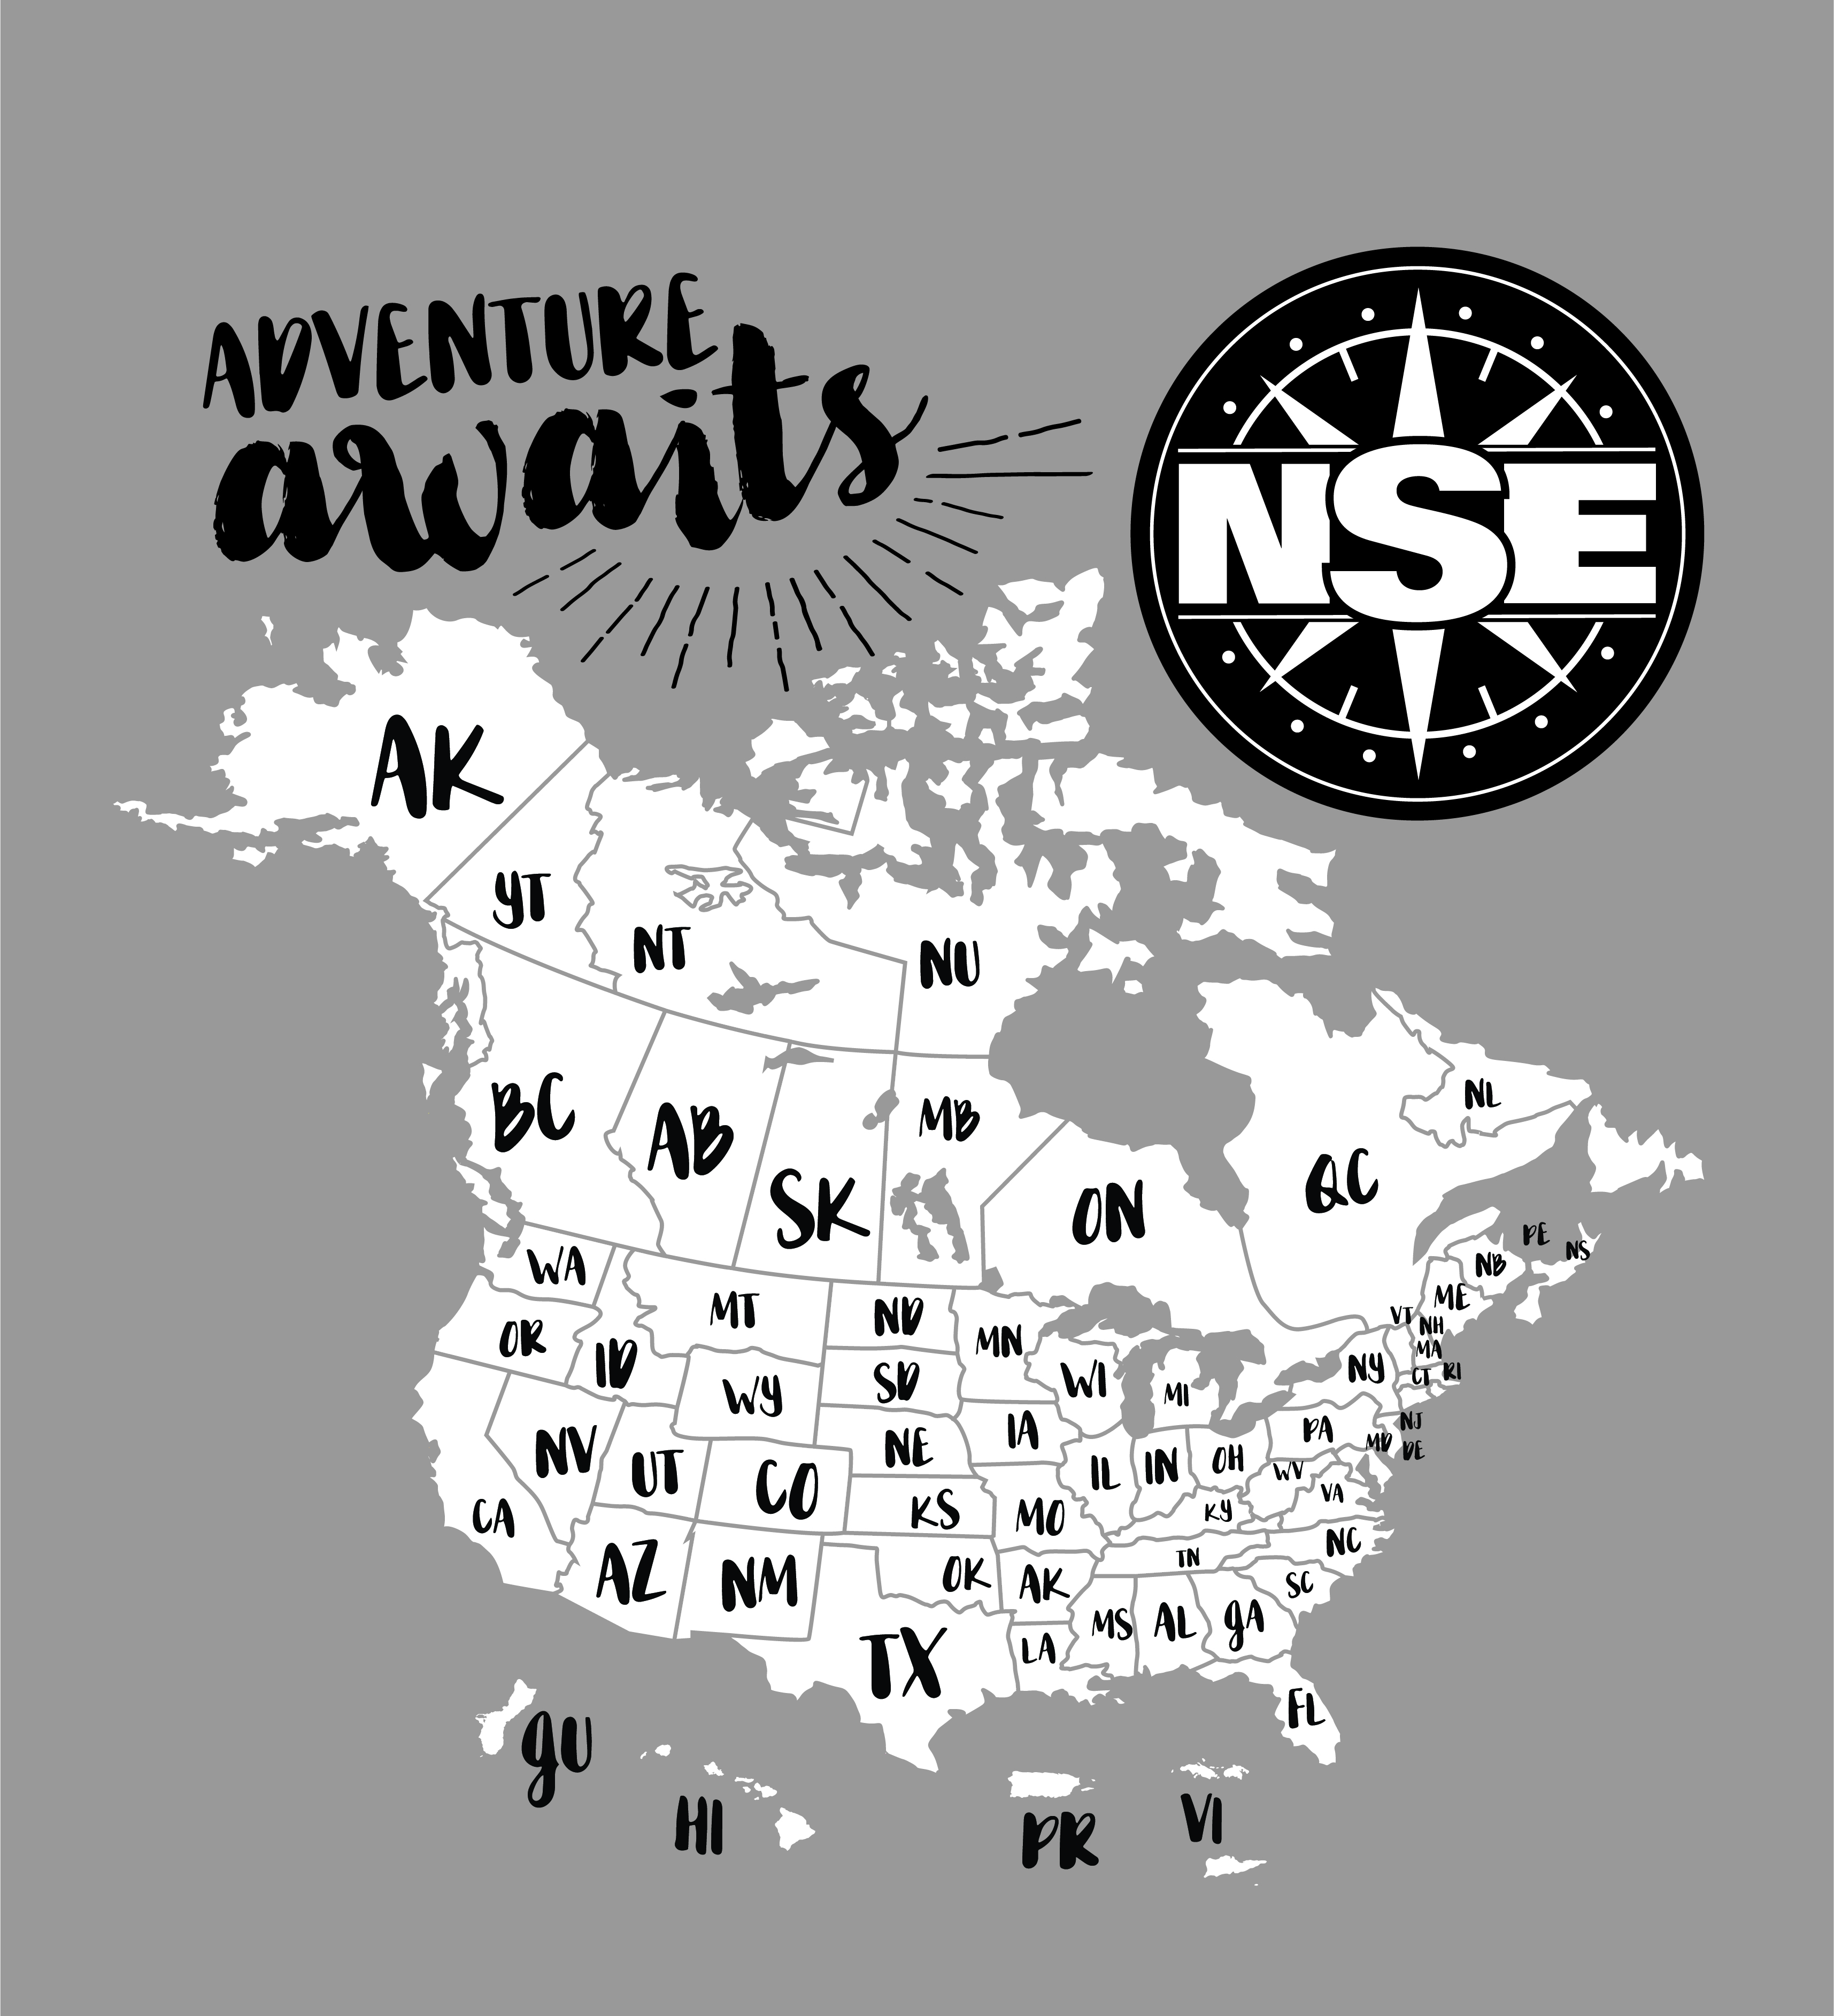 Adventure Awaits Map Cartoon Showing All the States